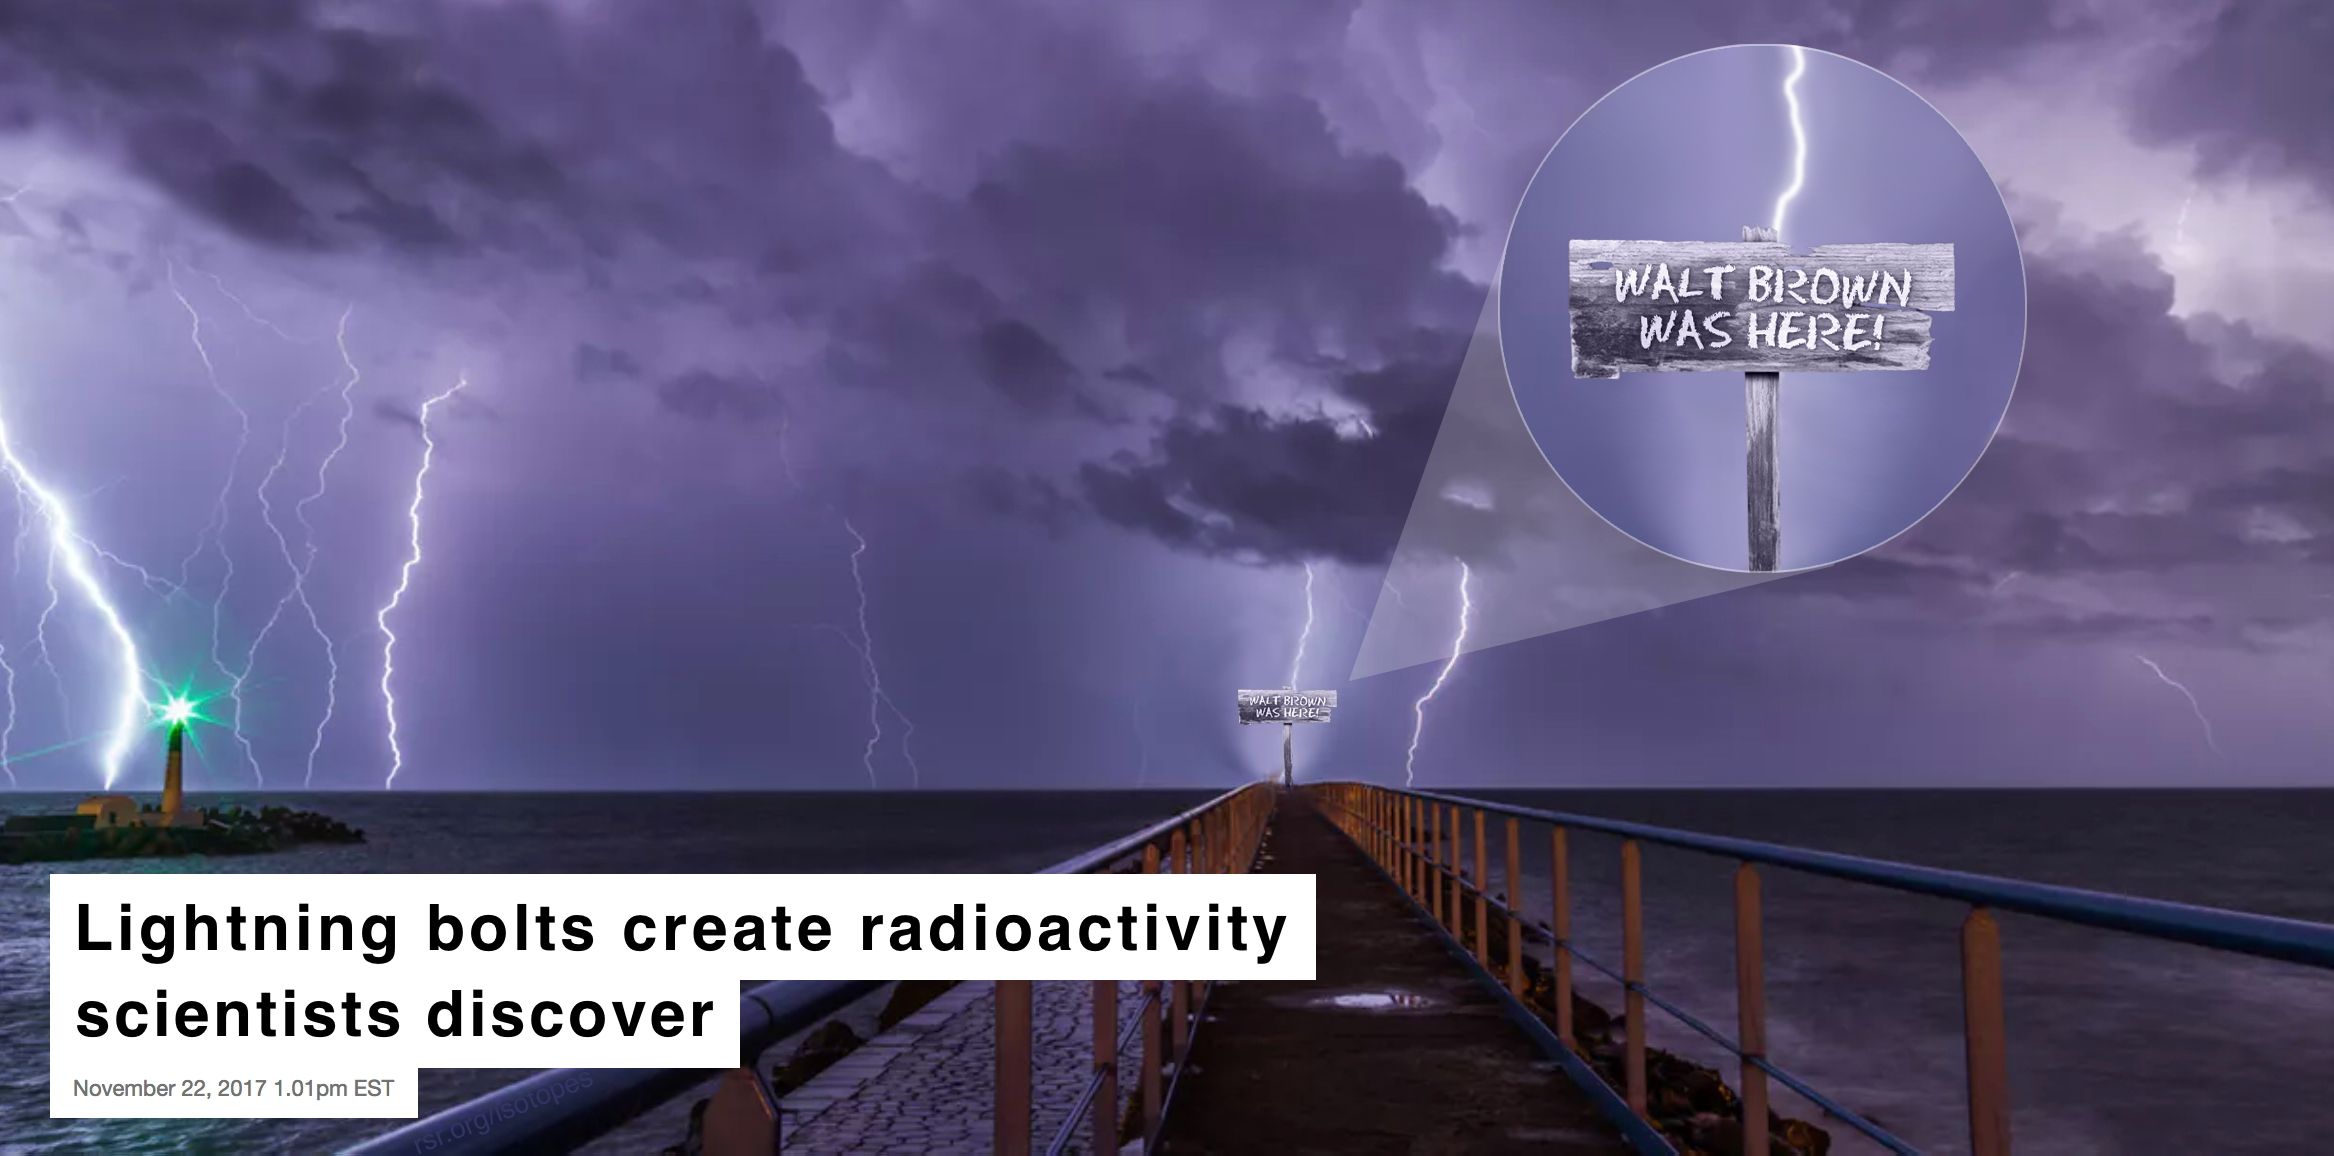 Science News article: Lightning produces radioactivity discovery, with Walt Brown was here sign imposed on image